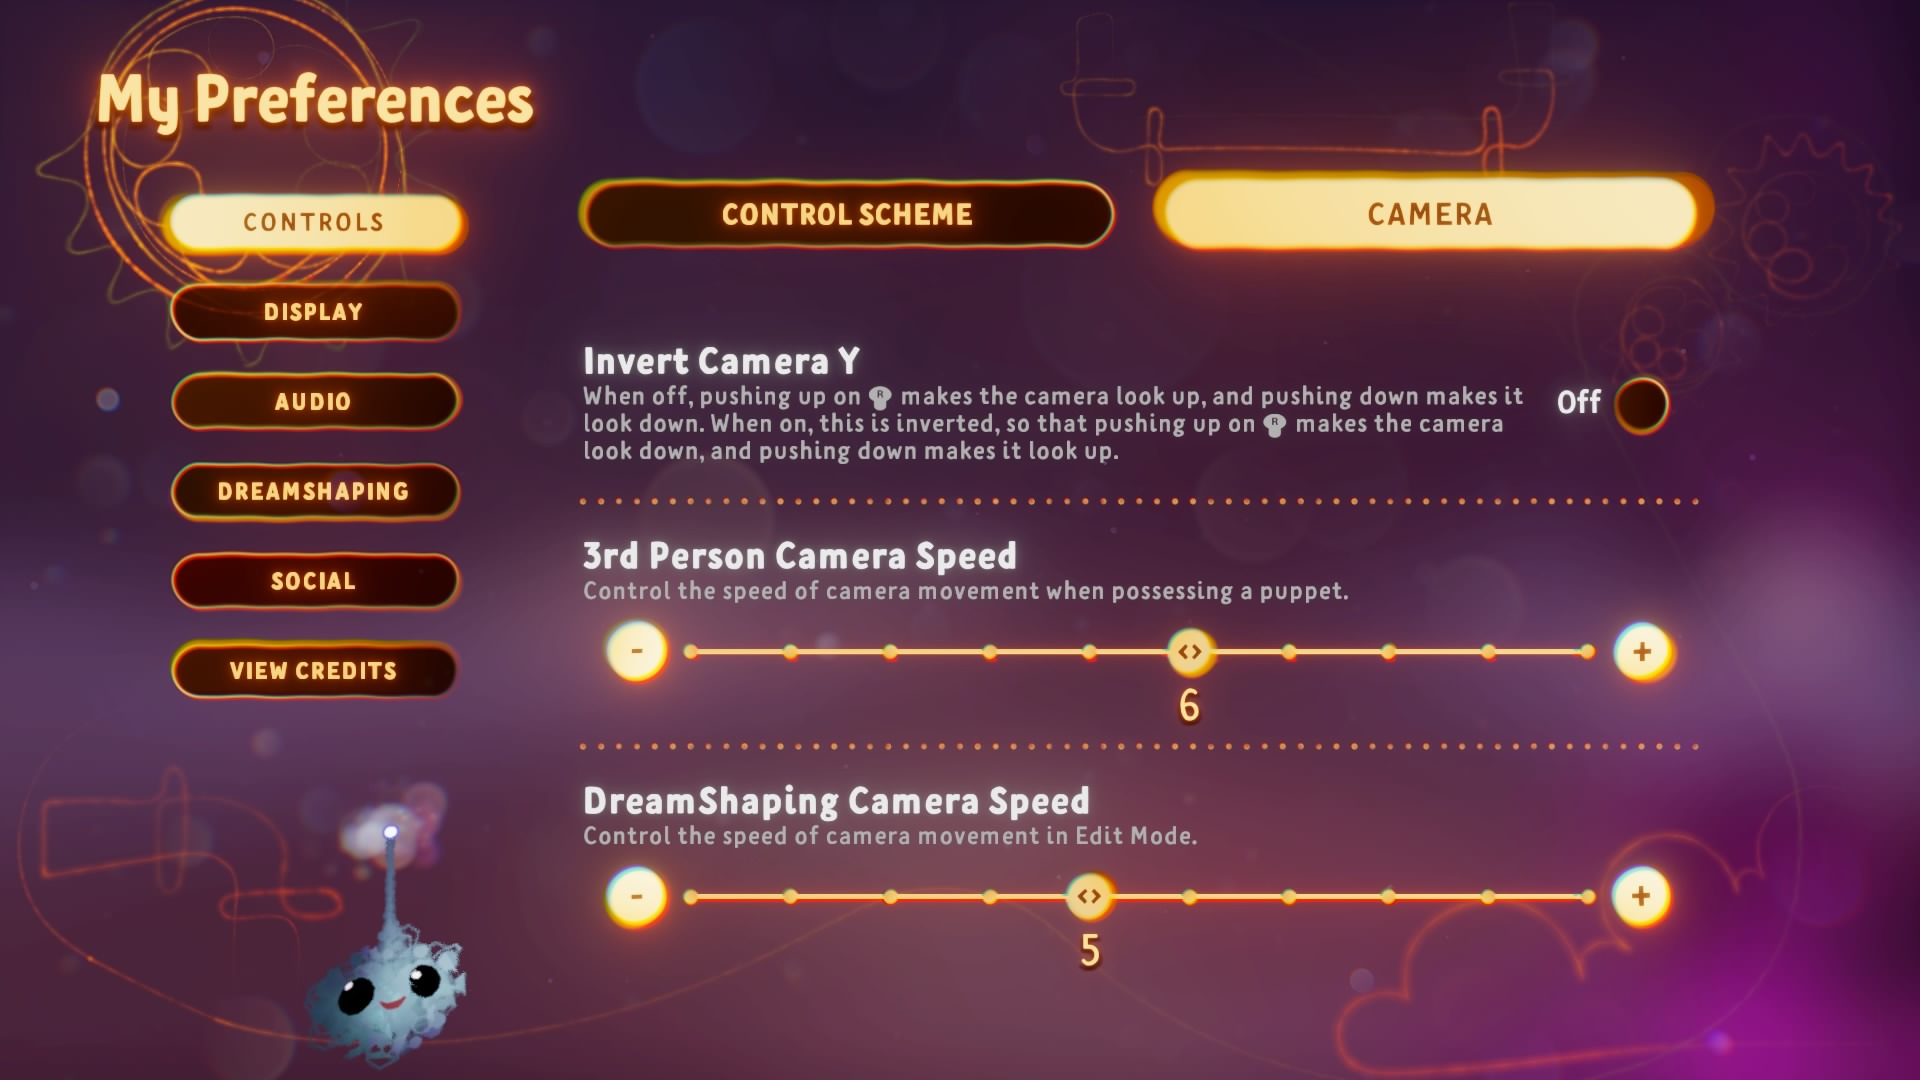 Screenshot showing Camera Options in the Preferences Menu